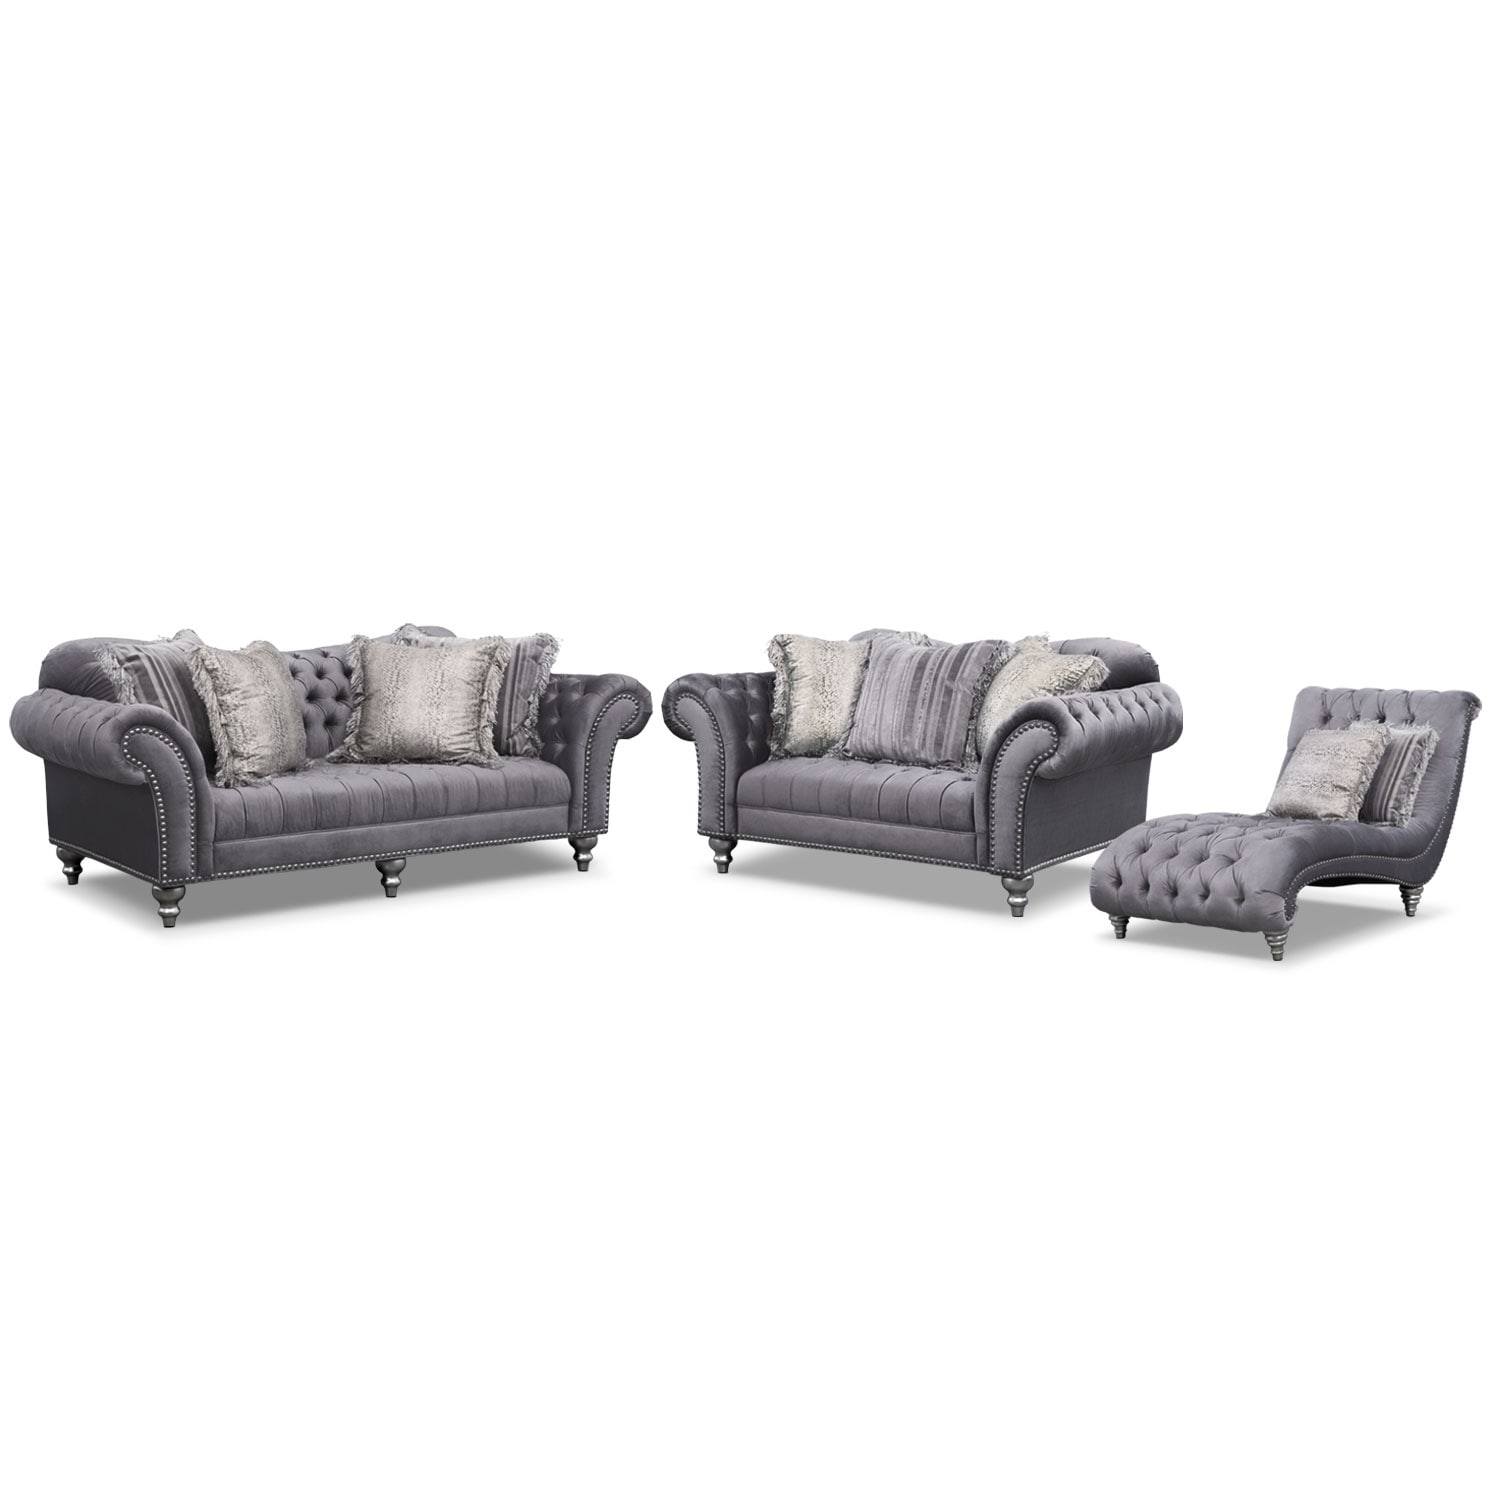 Sofa Loveseat And Chaise Set Hodan Sofa Chaise Ashley